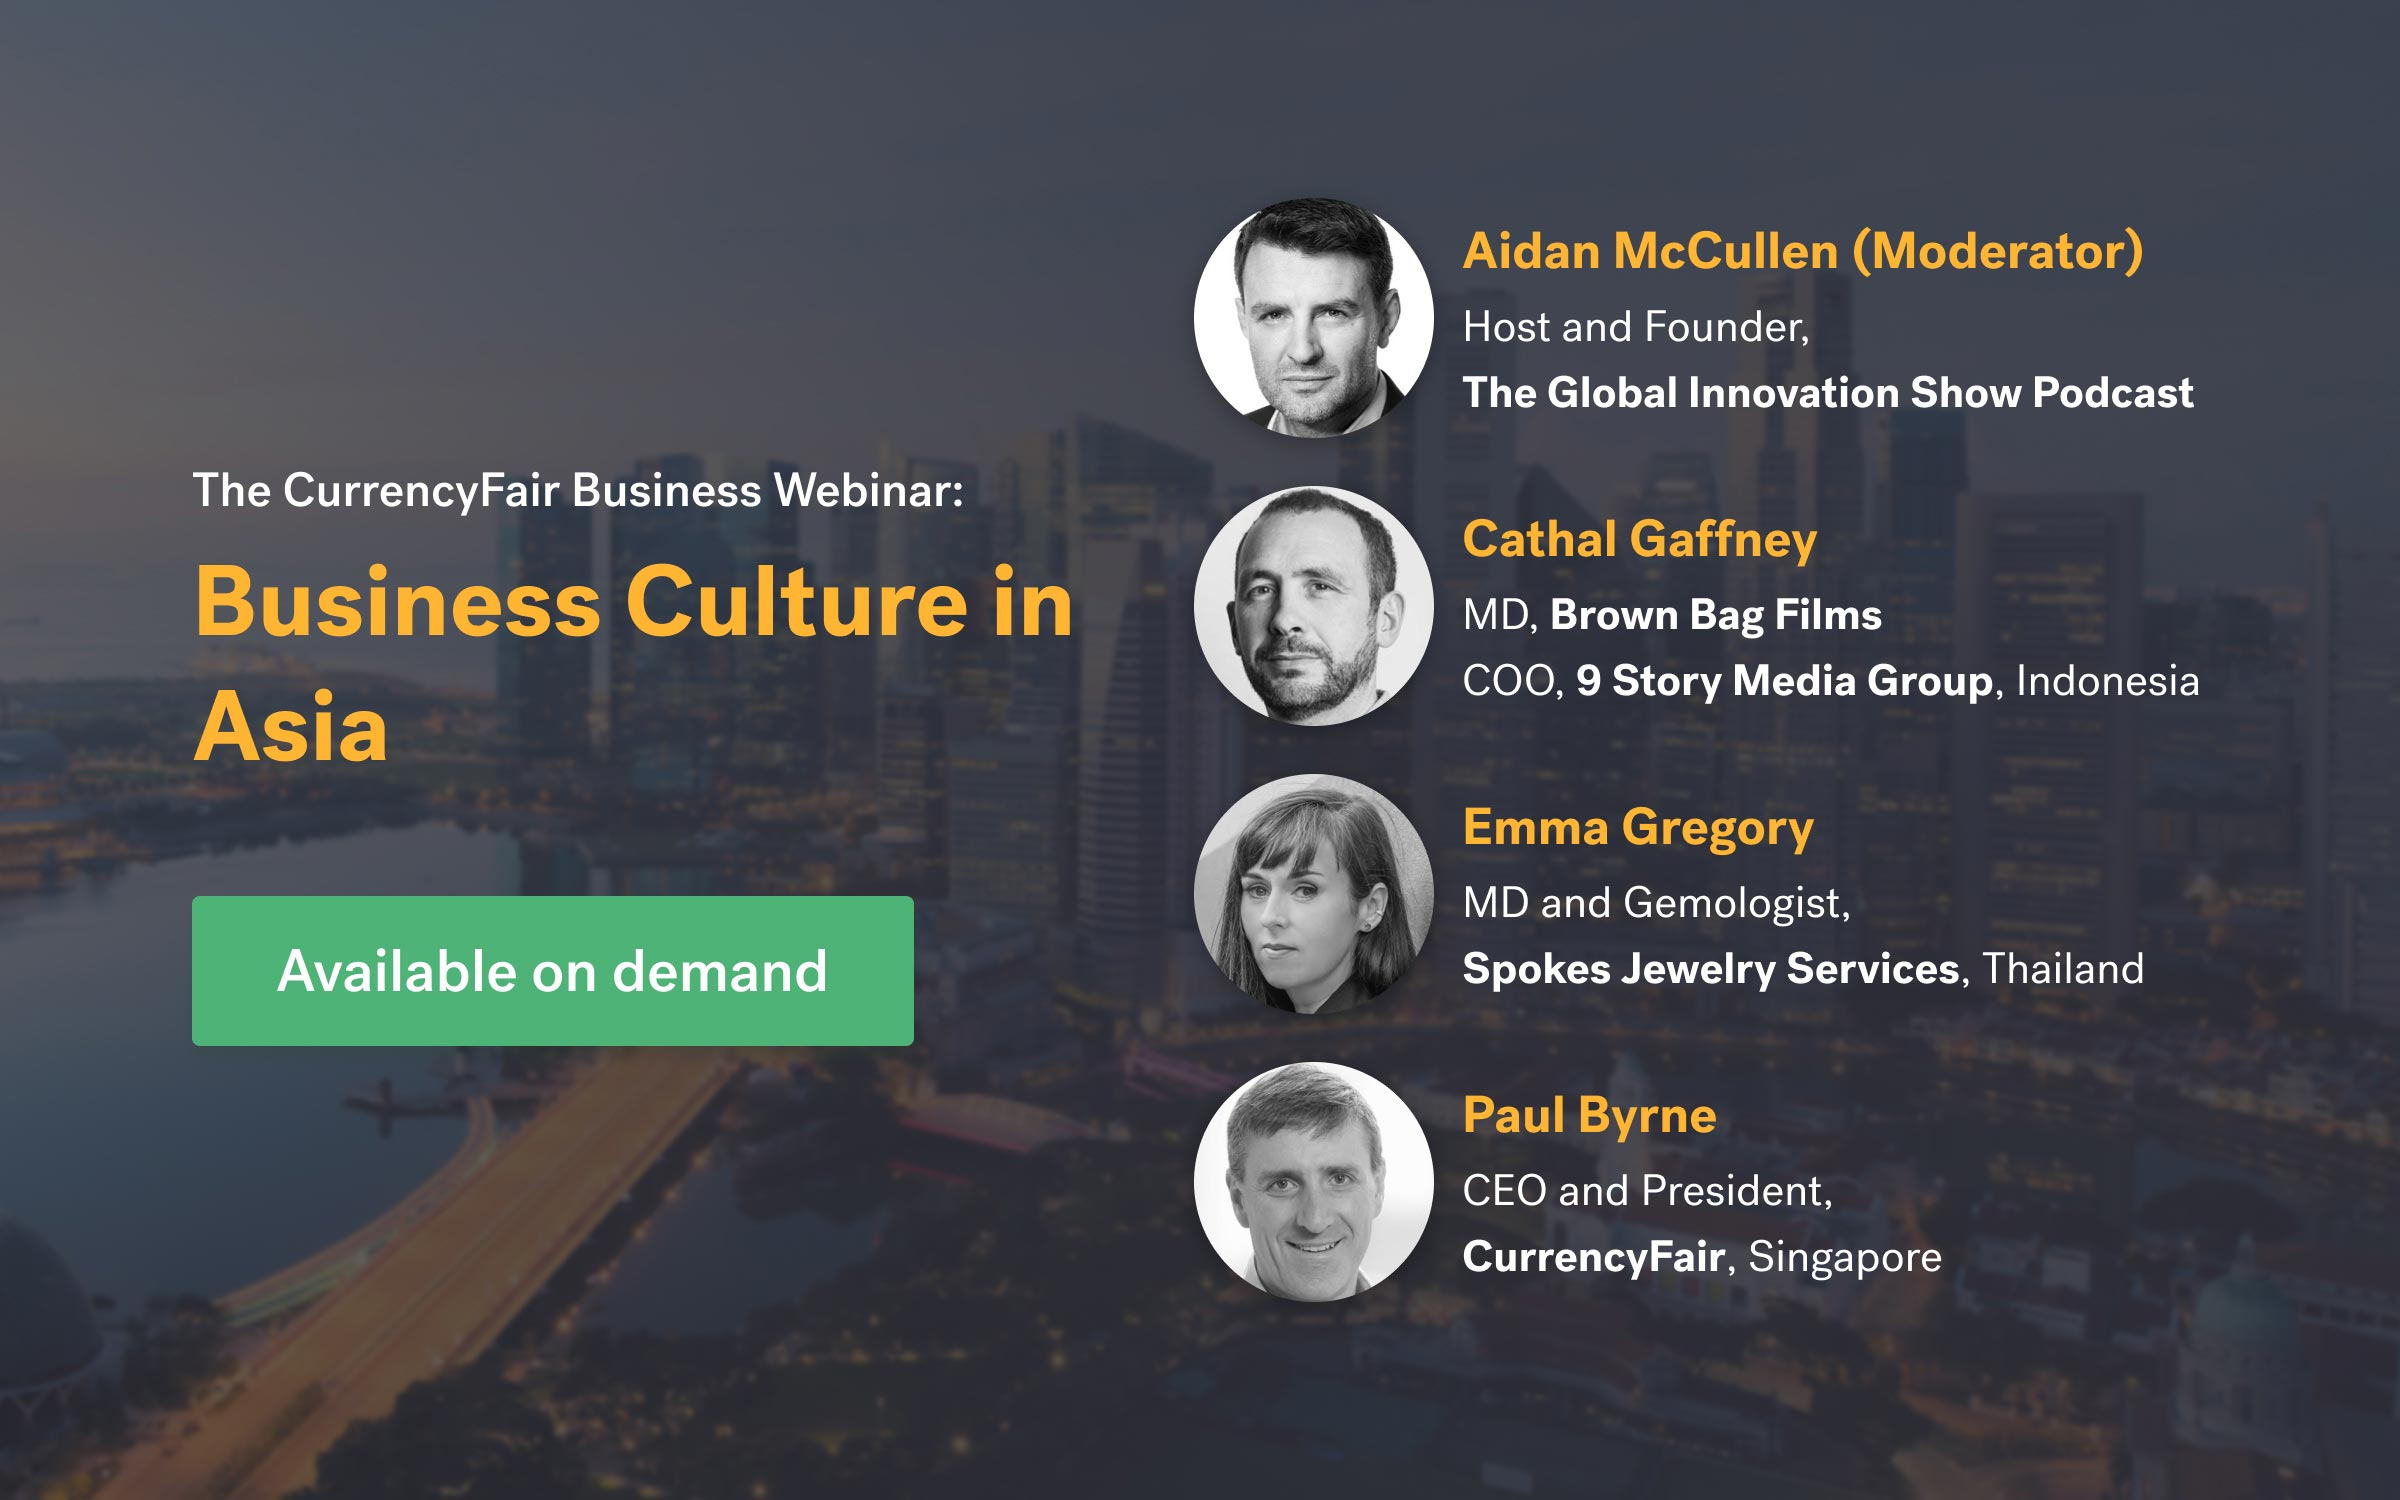 Business Culture in Asia webinar: available on demand now